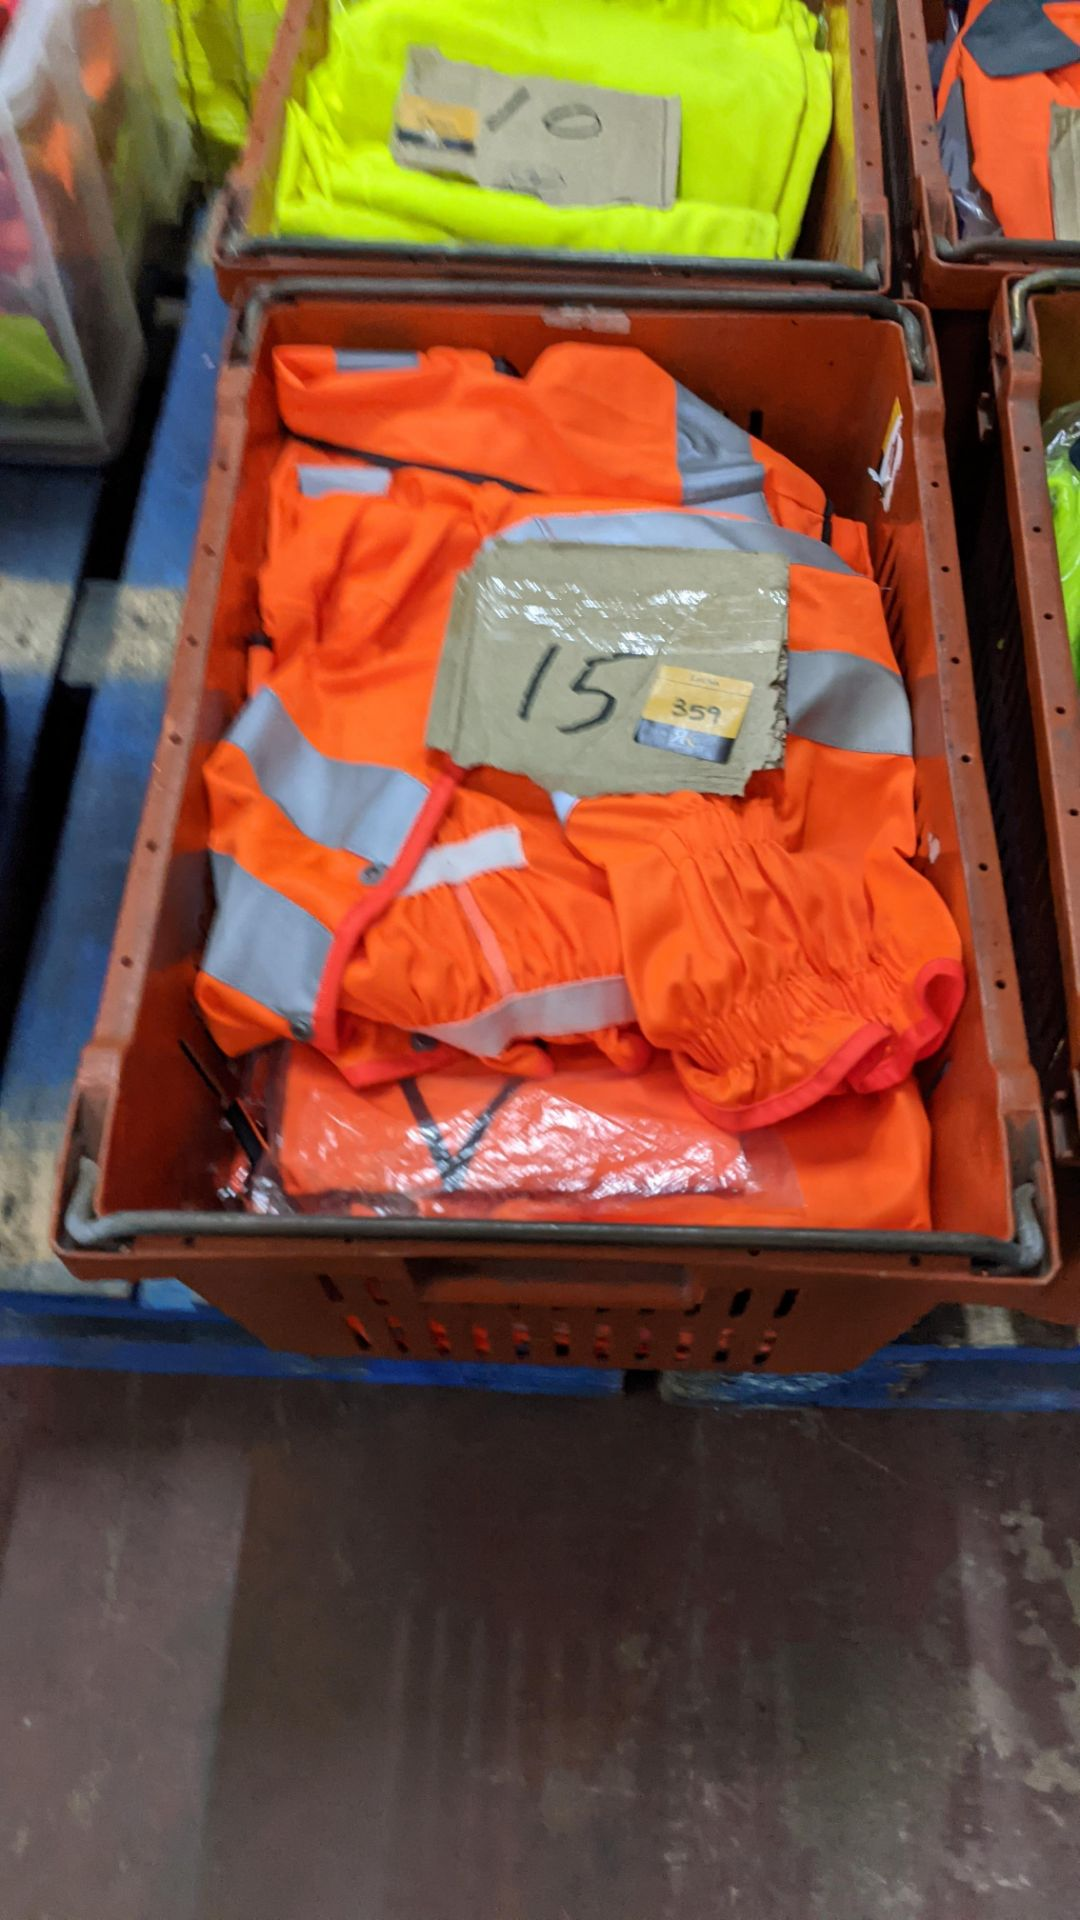 15 off assorted hi-vis garments - Image 4 of 4